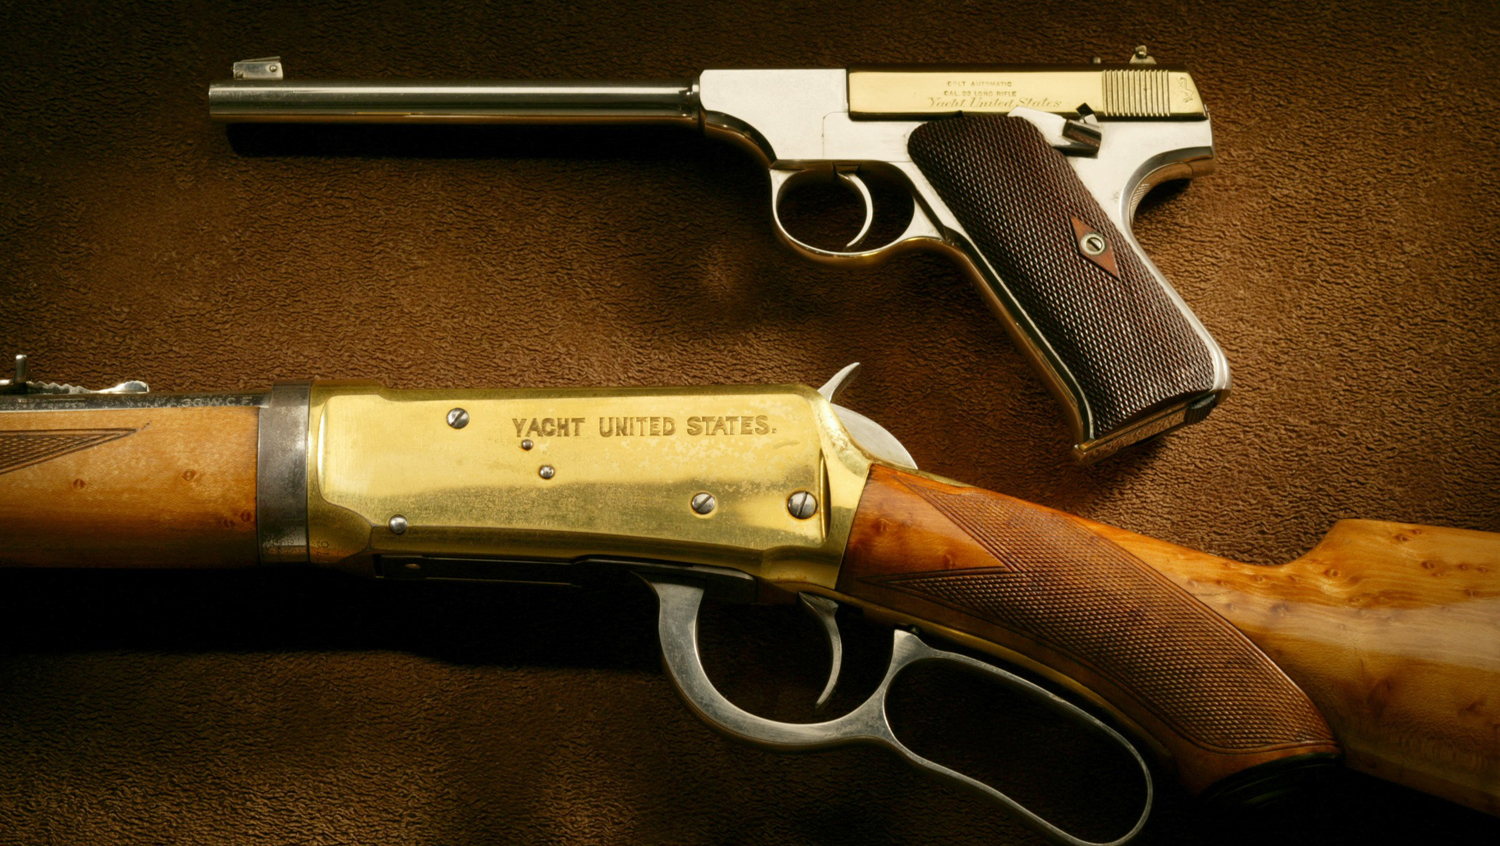 A Sea-Going Arsenal:  Guns of the Yacht United States